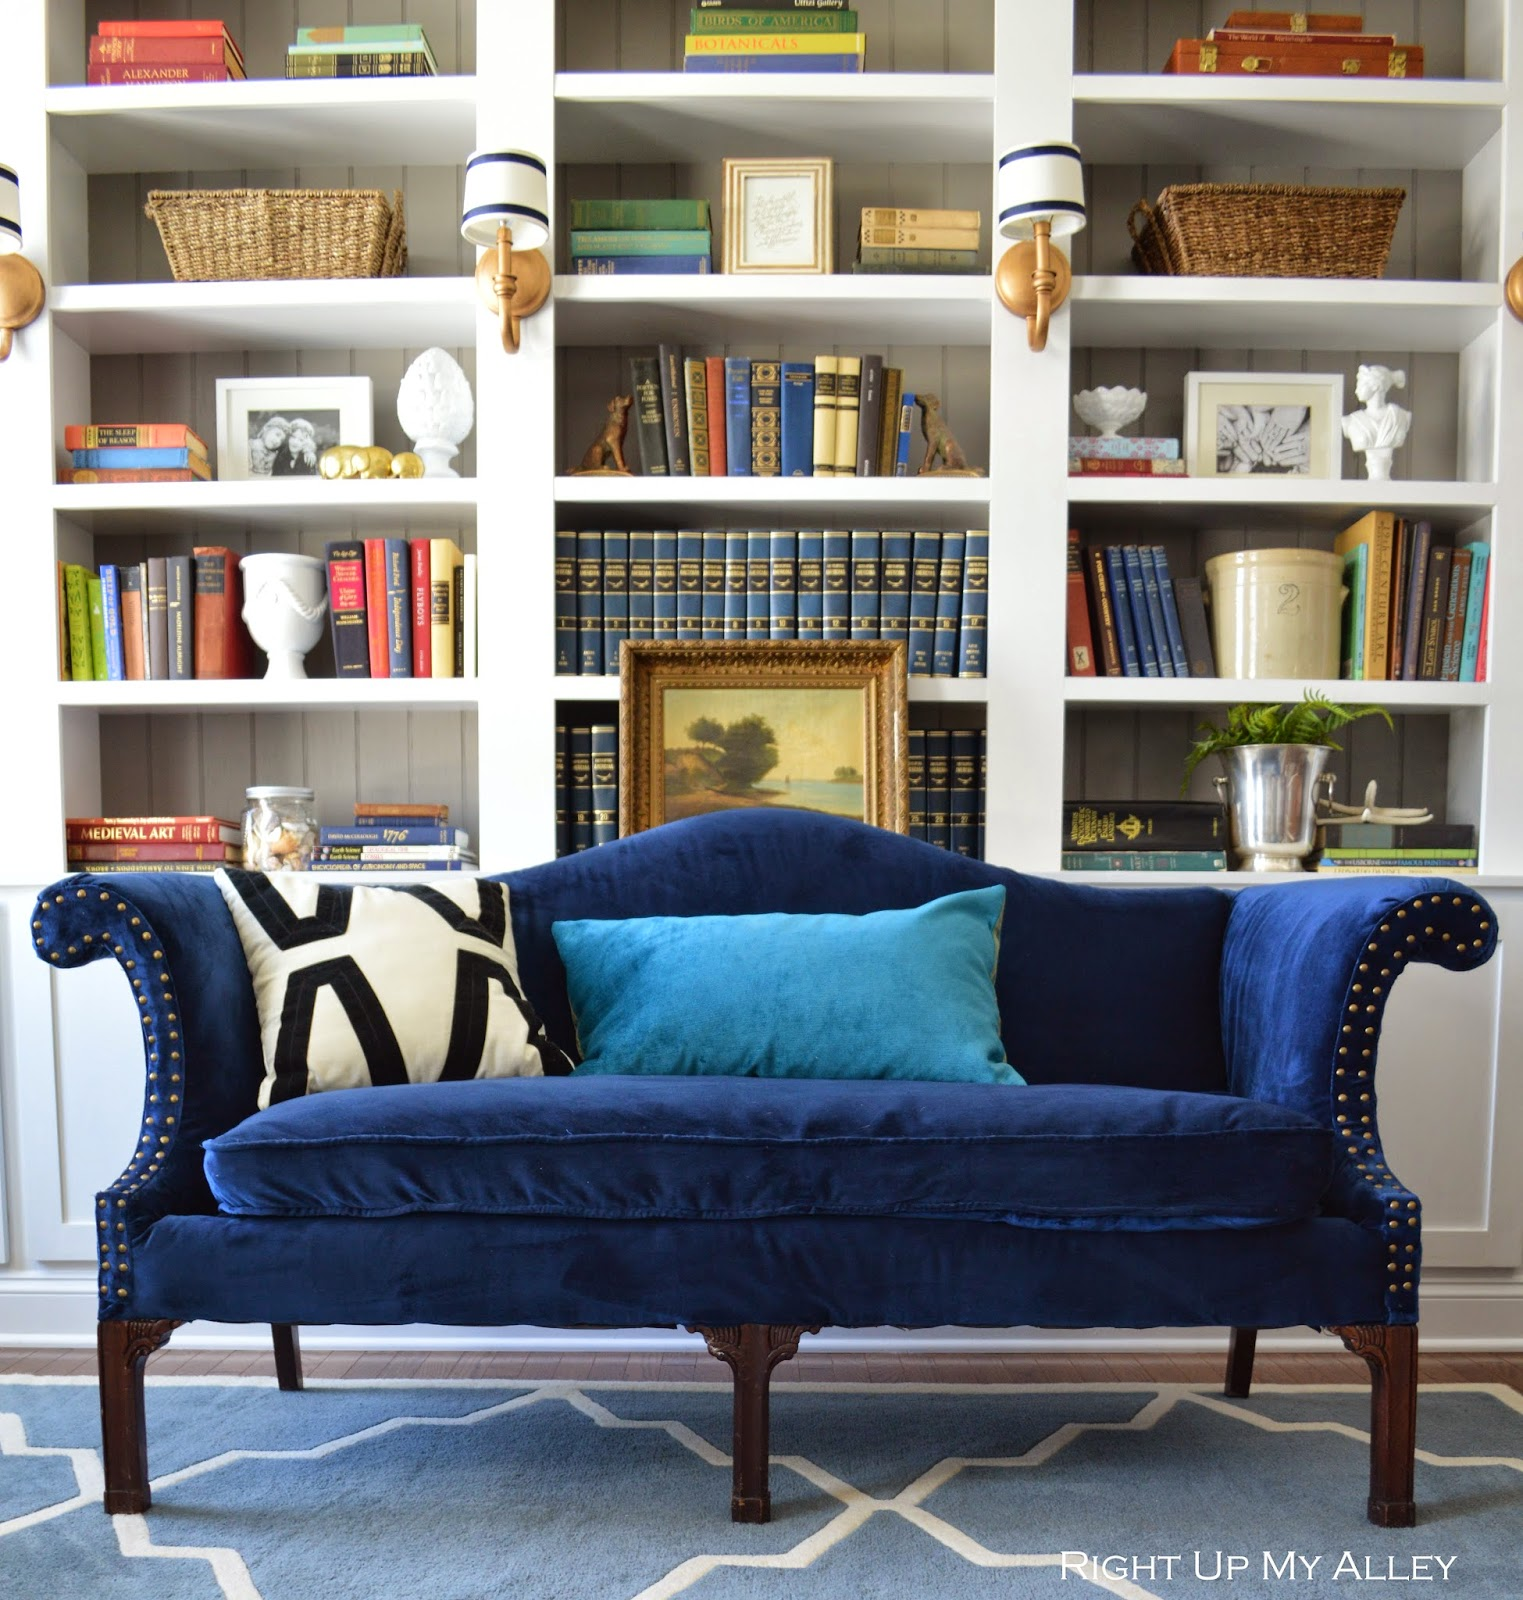 Right up my alley The Courage To Reupholster A Sofa and a Sort